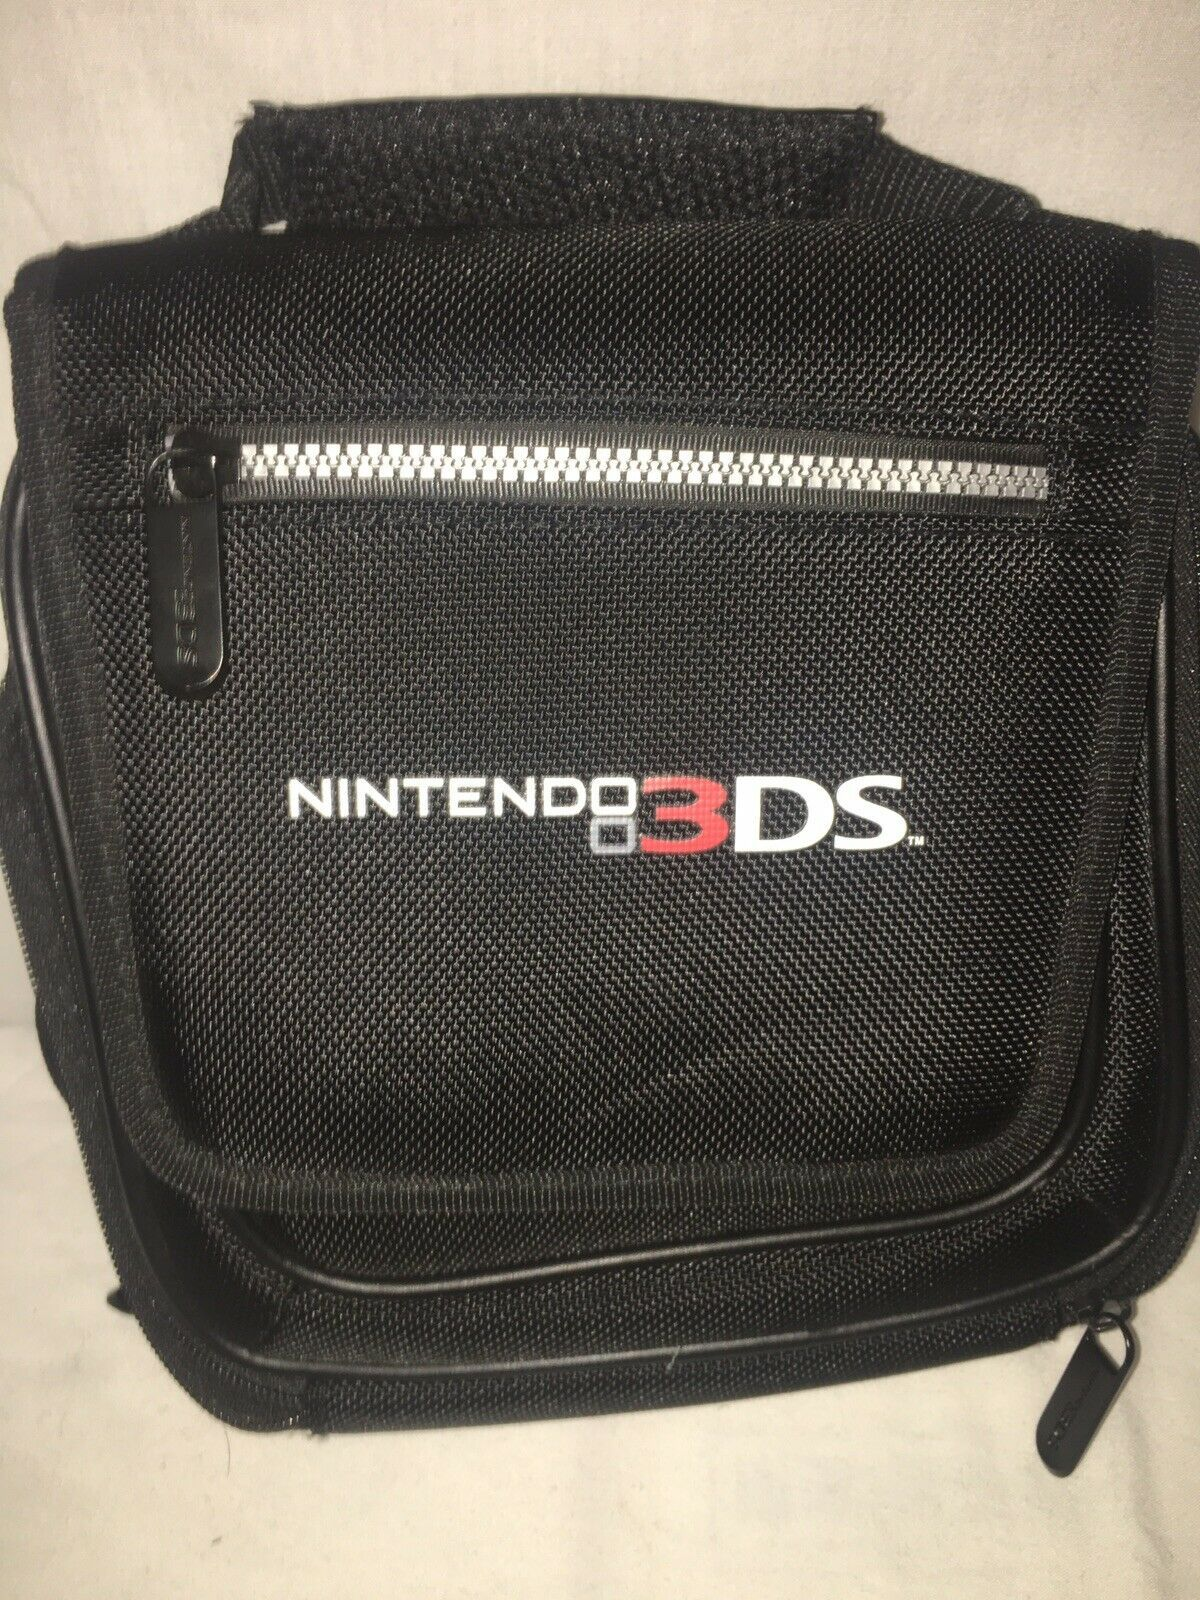 Primary image for Offical Nintendo 3DS Carrying Case